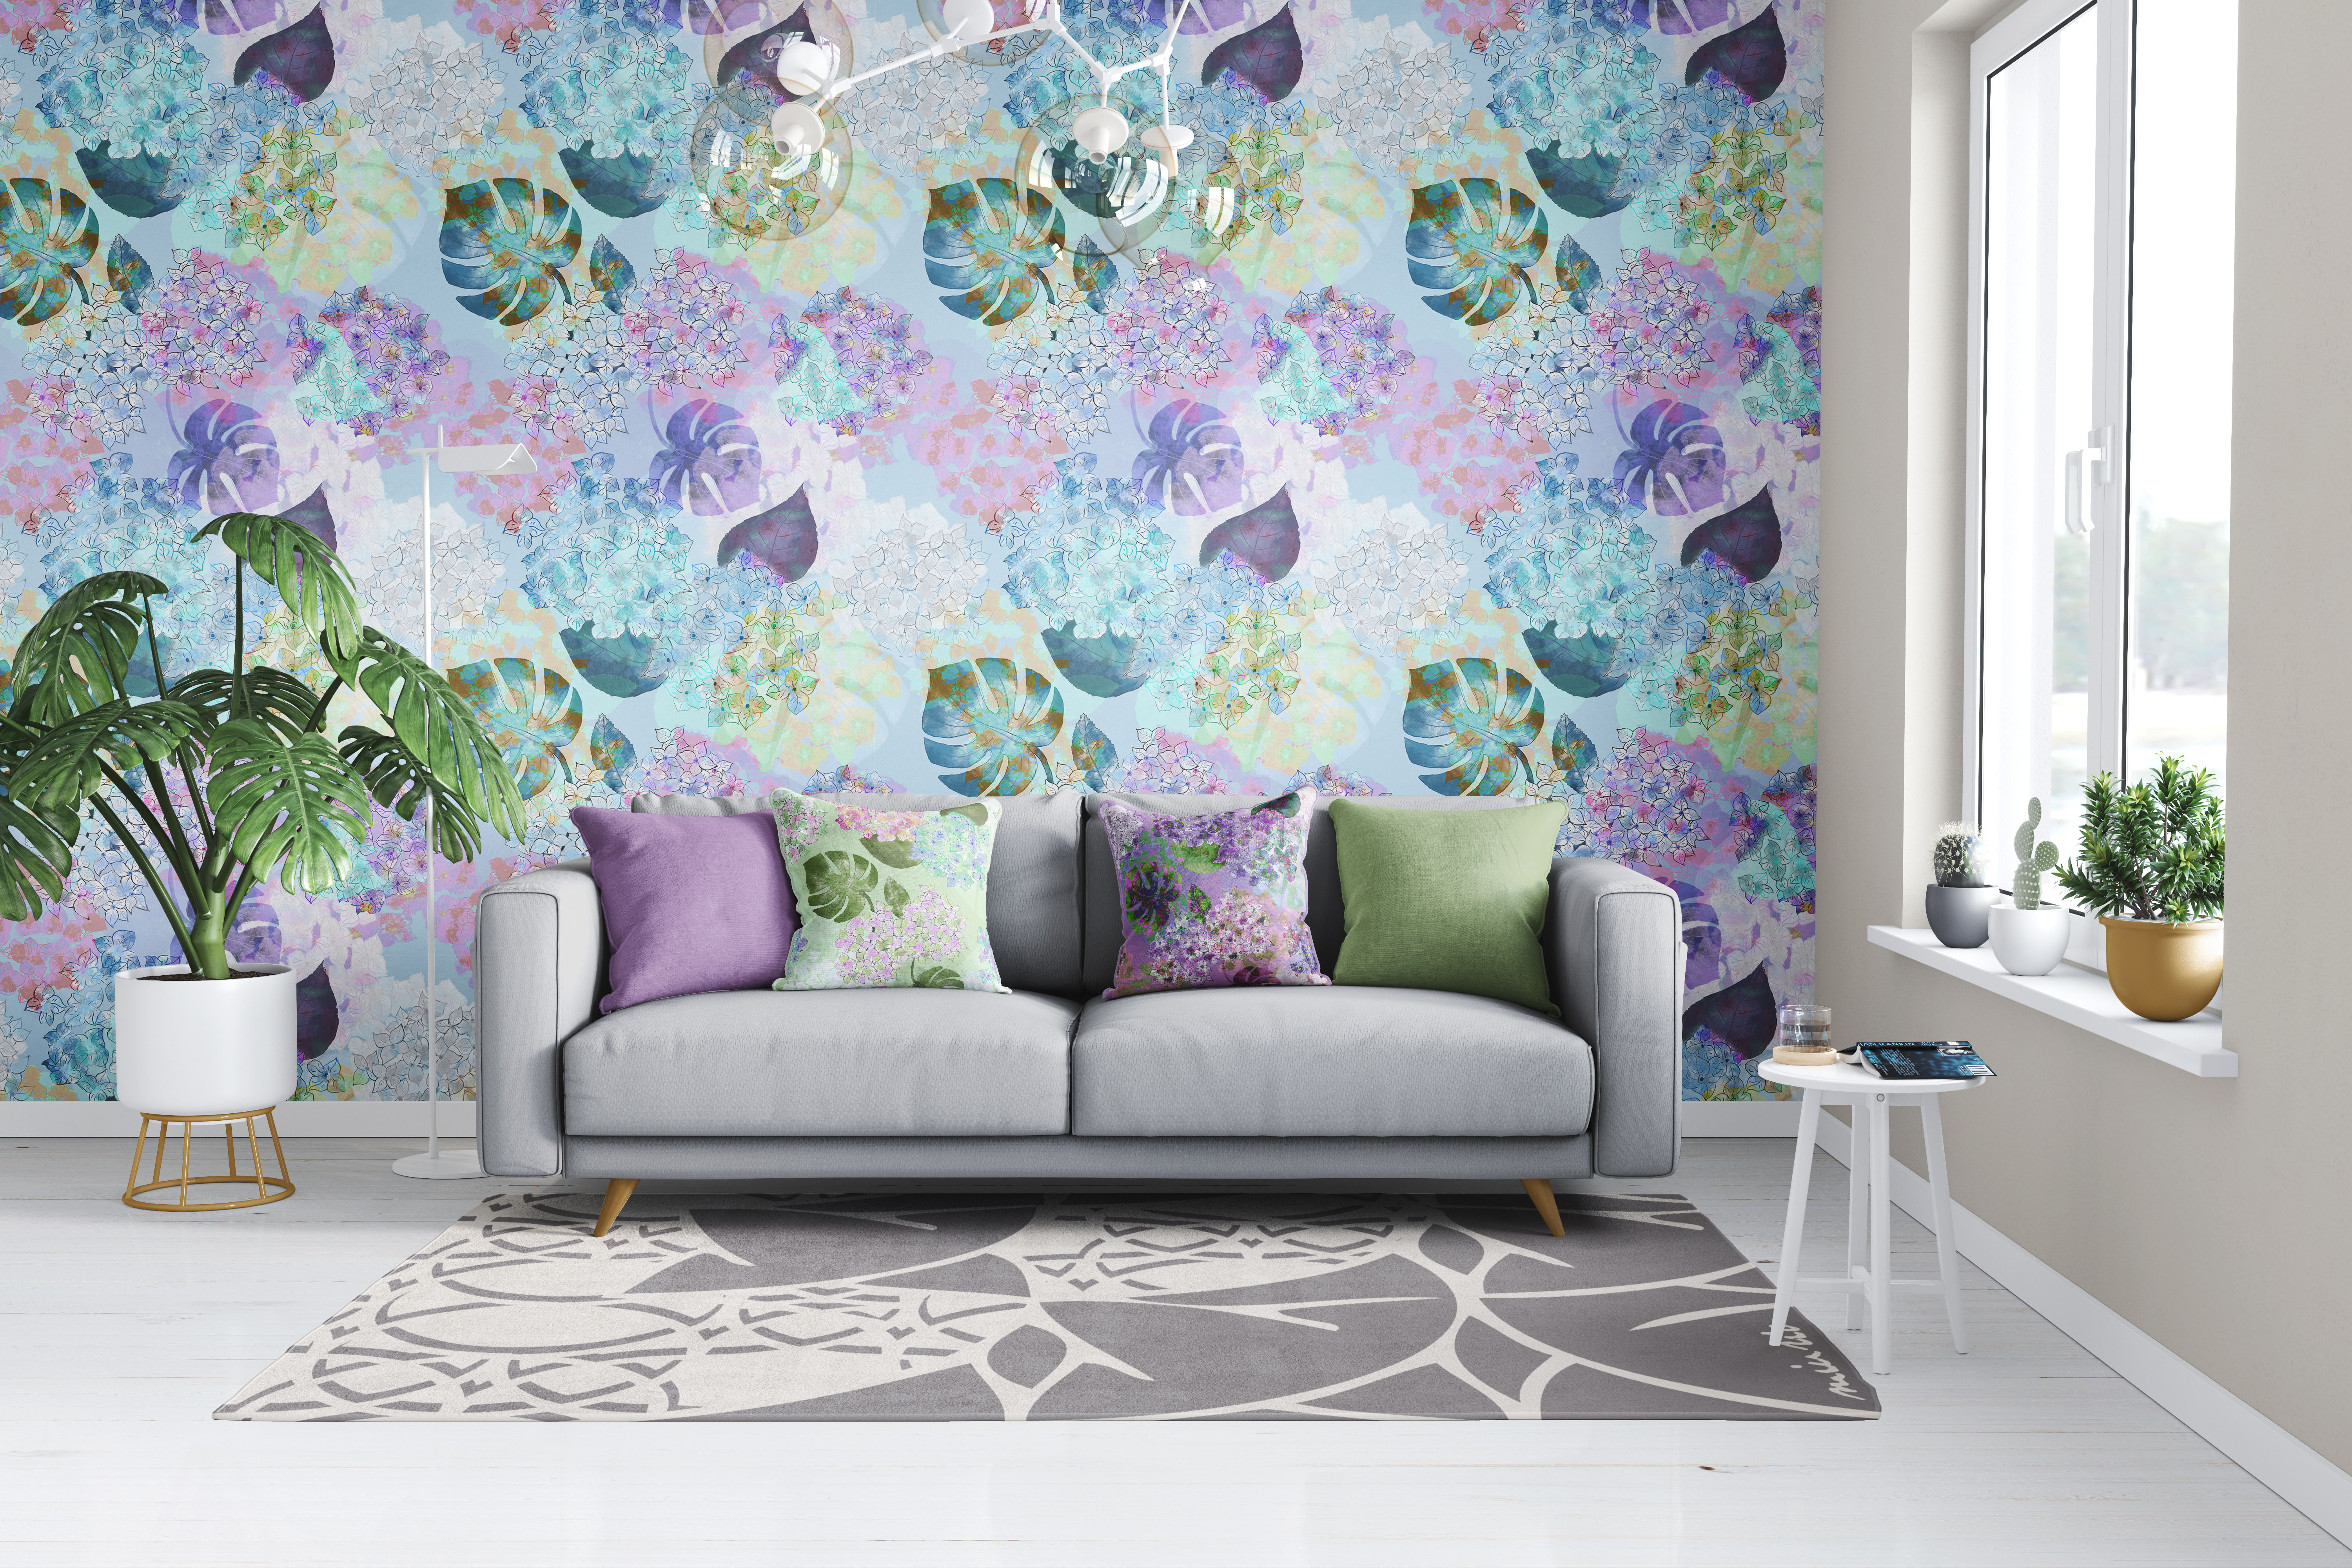 HORTENSIA PARADISE in light blue wallpaper